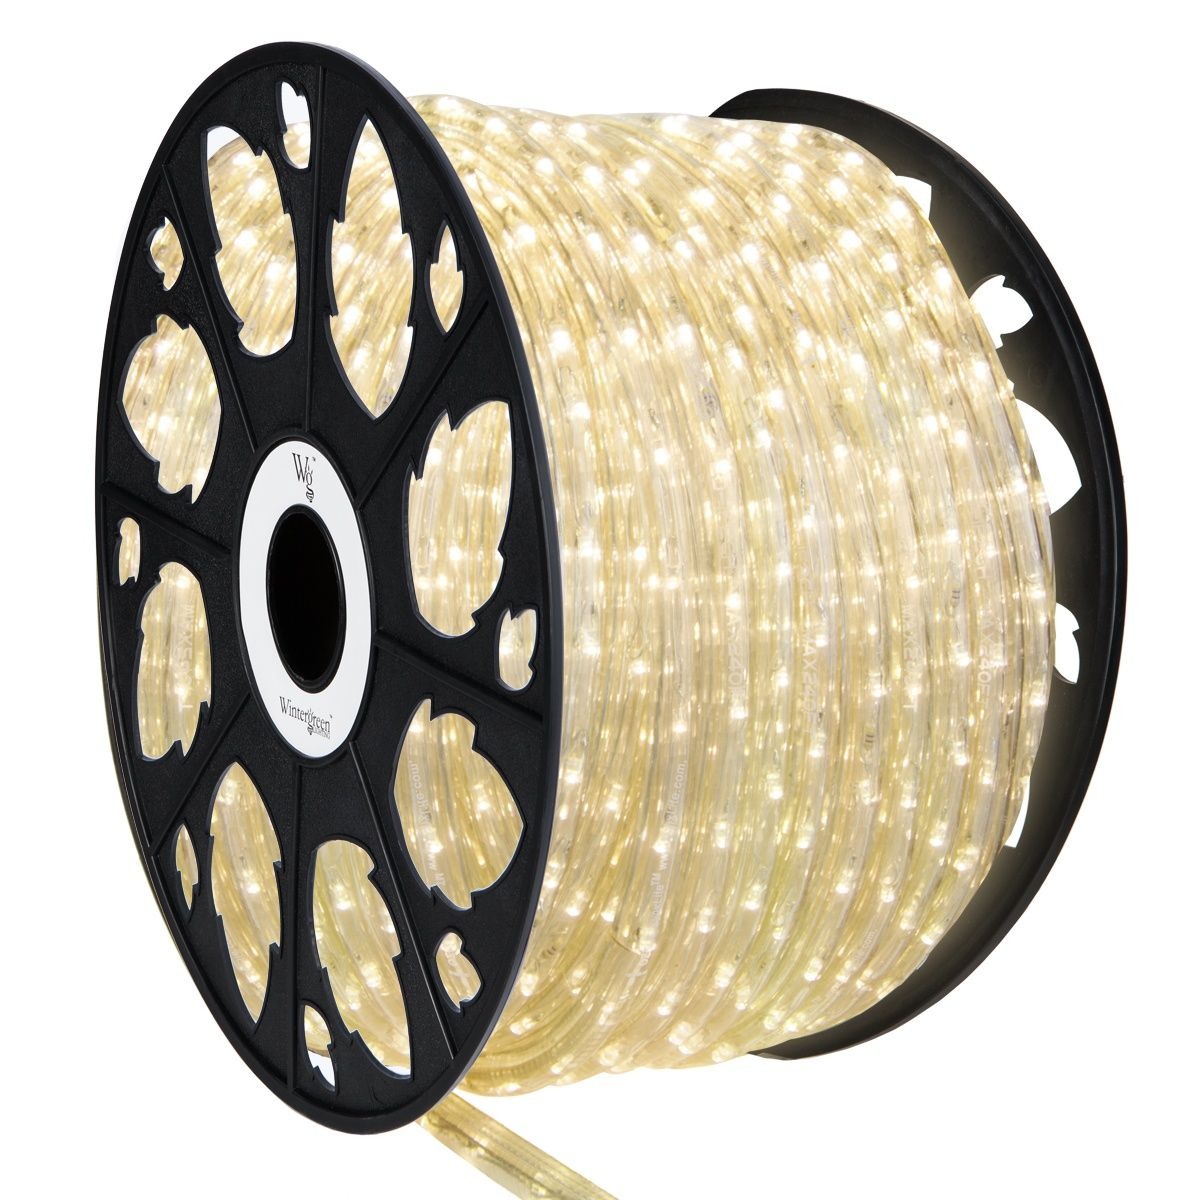 Led Rope Lights 150 Warm White Led Rope Light Commercial Spool 120 Volt Christmas Lights Etc Led Rope Lights Rope Light Led Rope